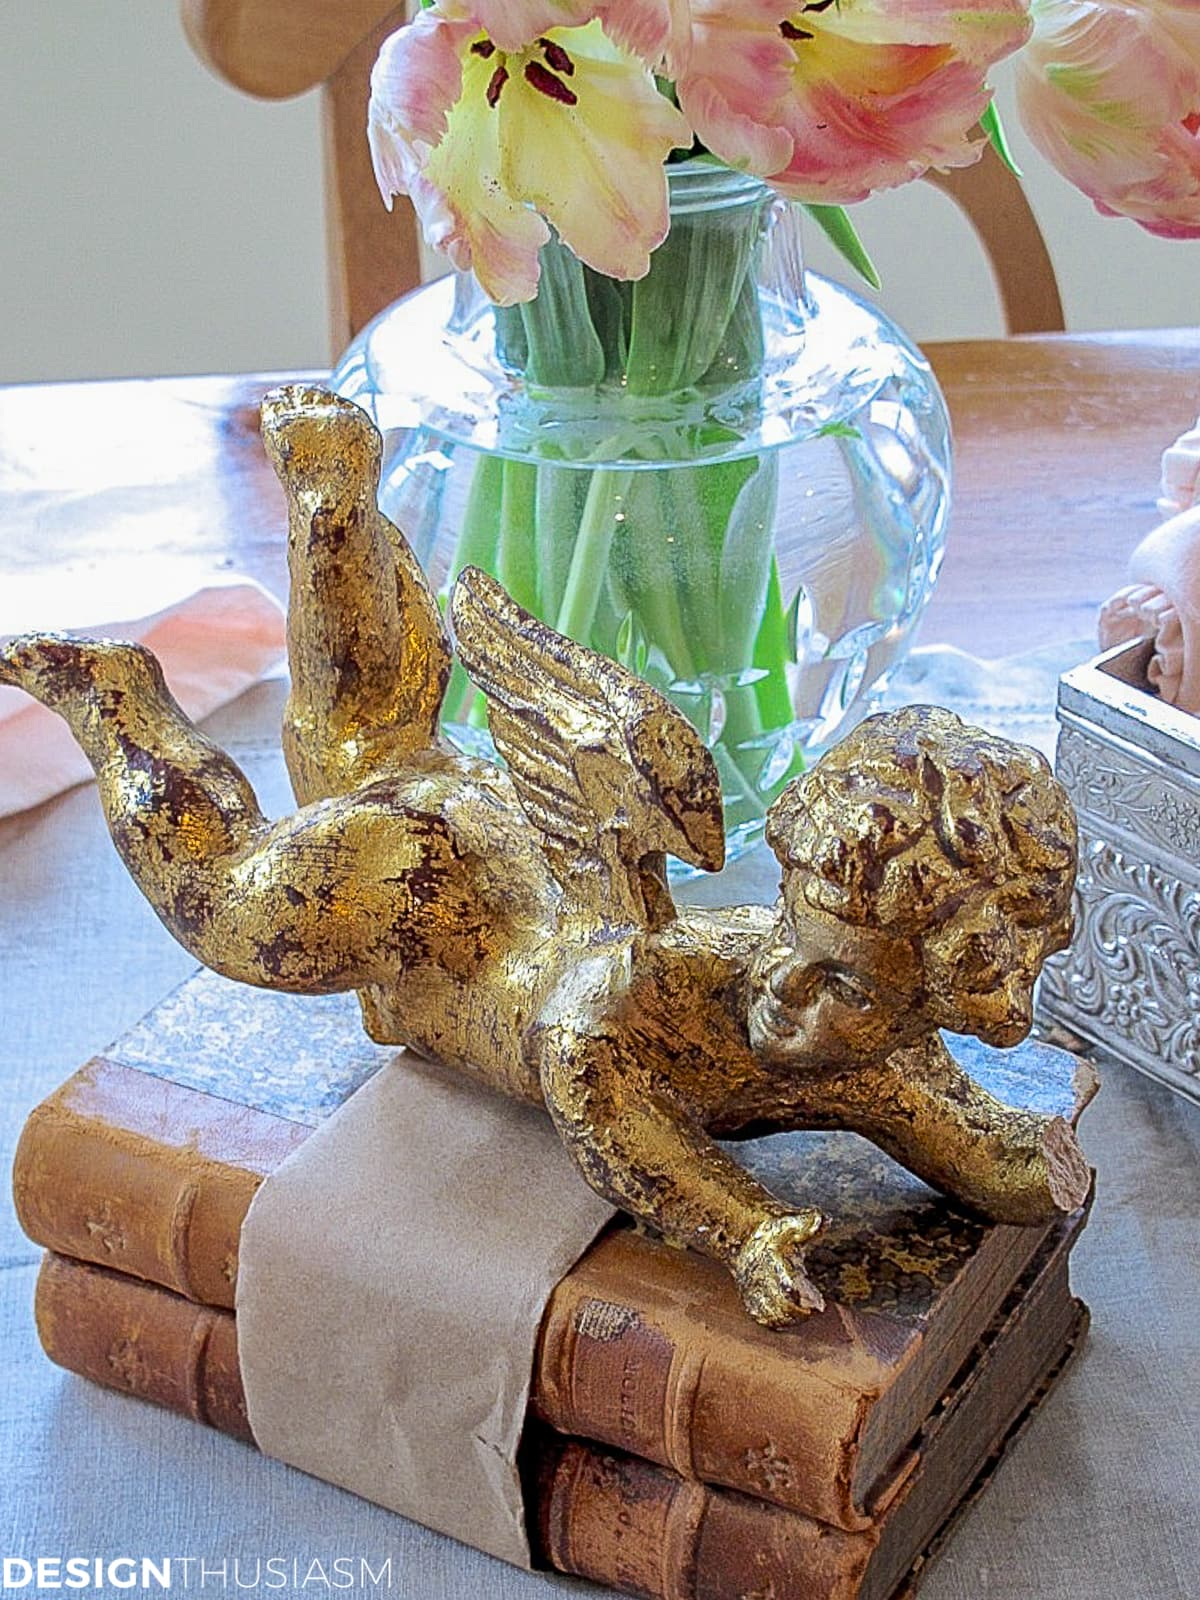 gilded cherub on vintage books on a kitchen table